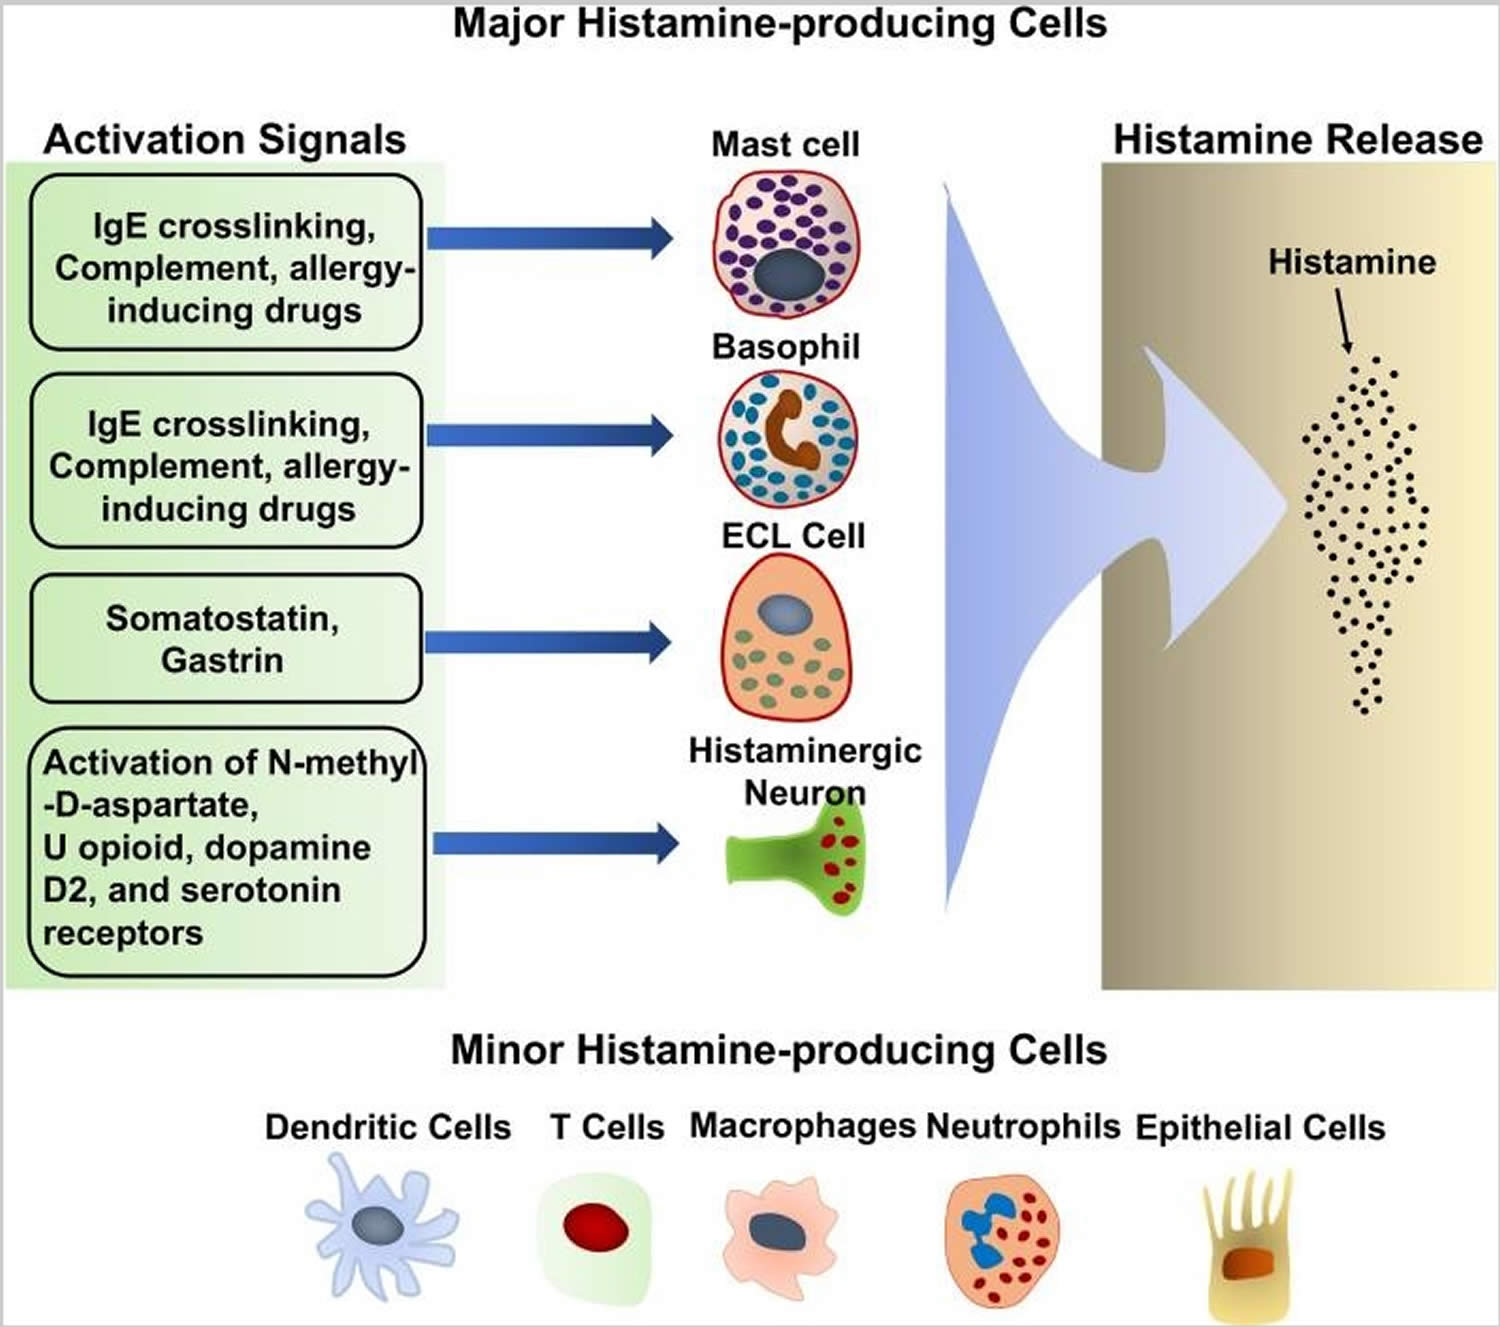 Histamine-producing cells